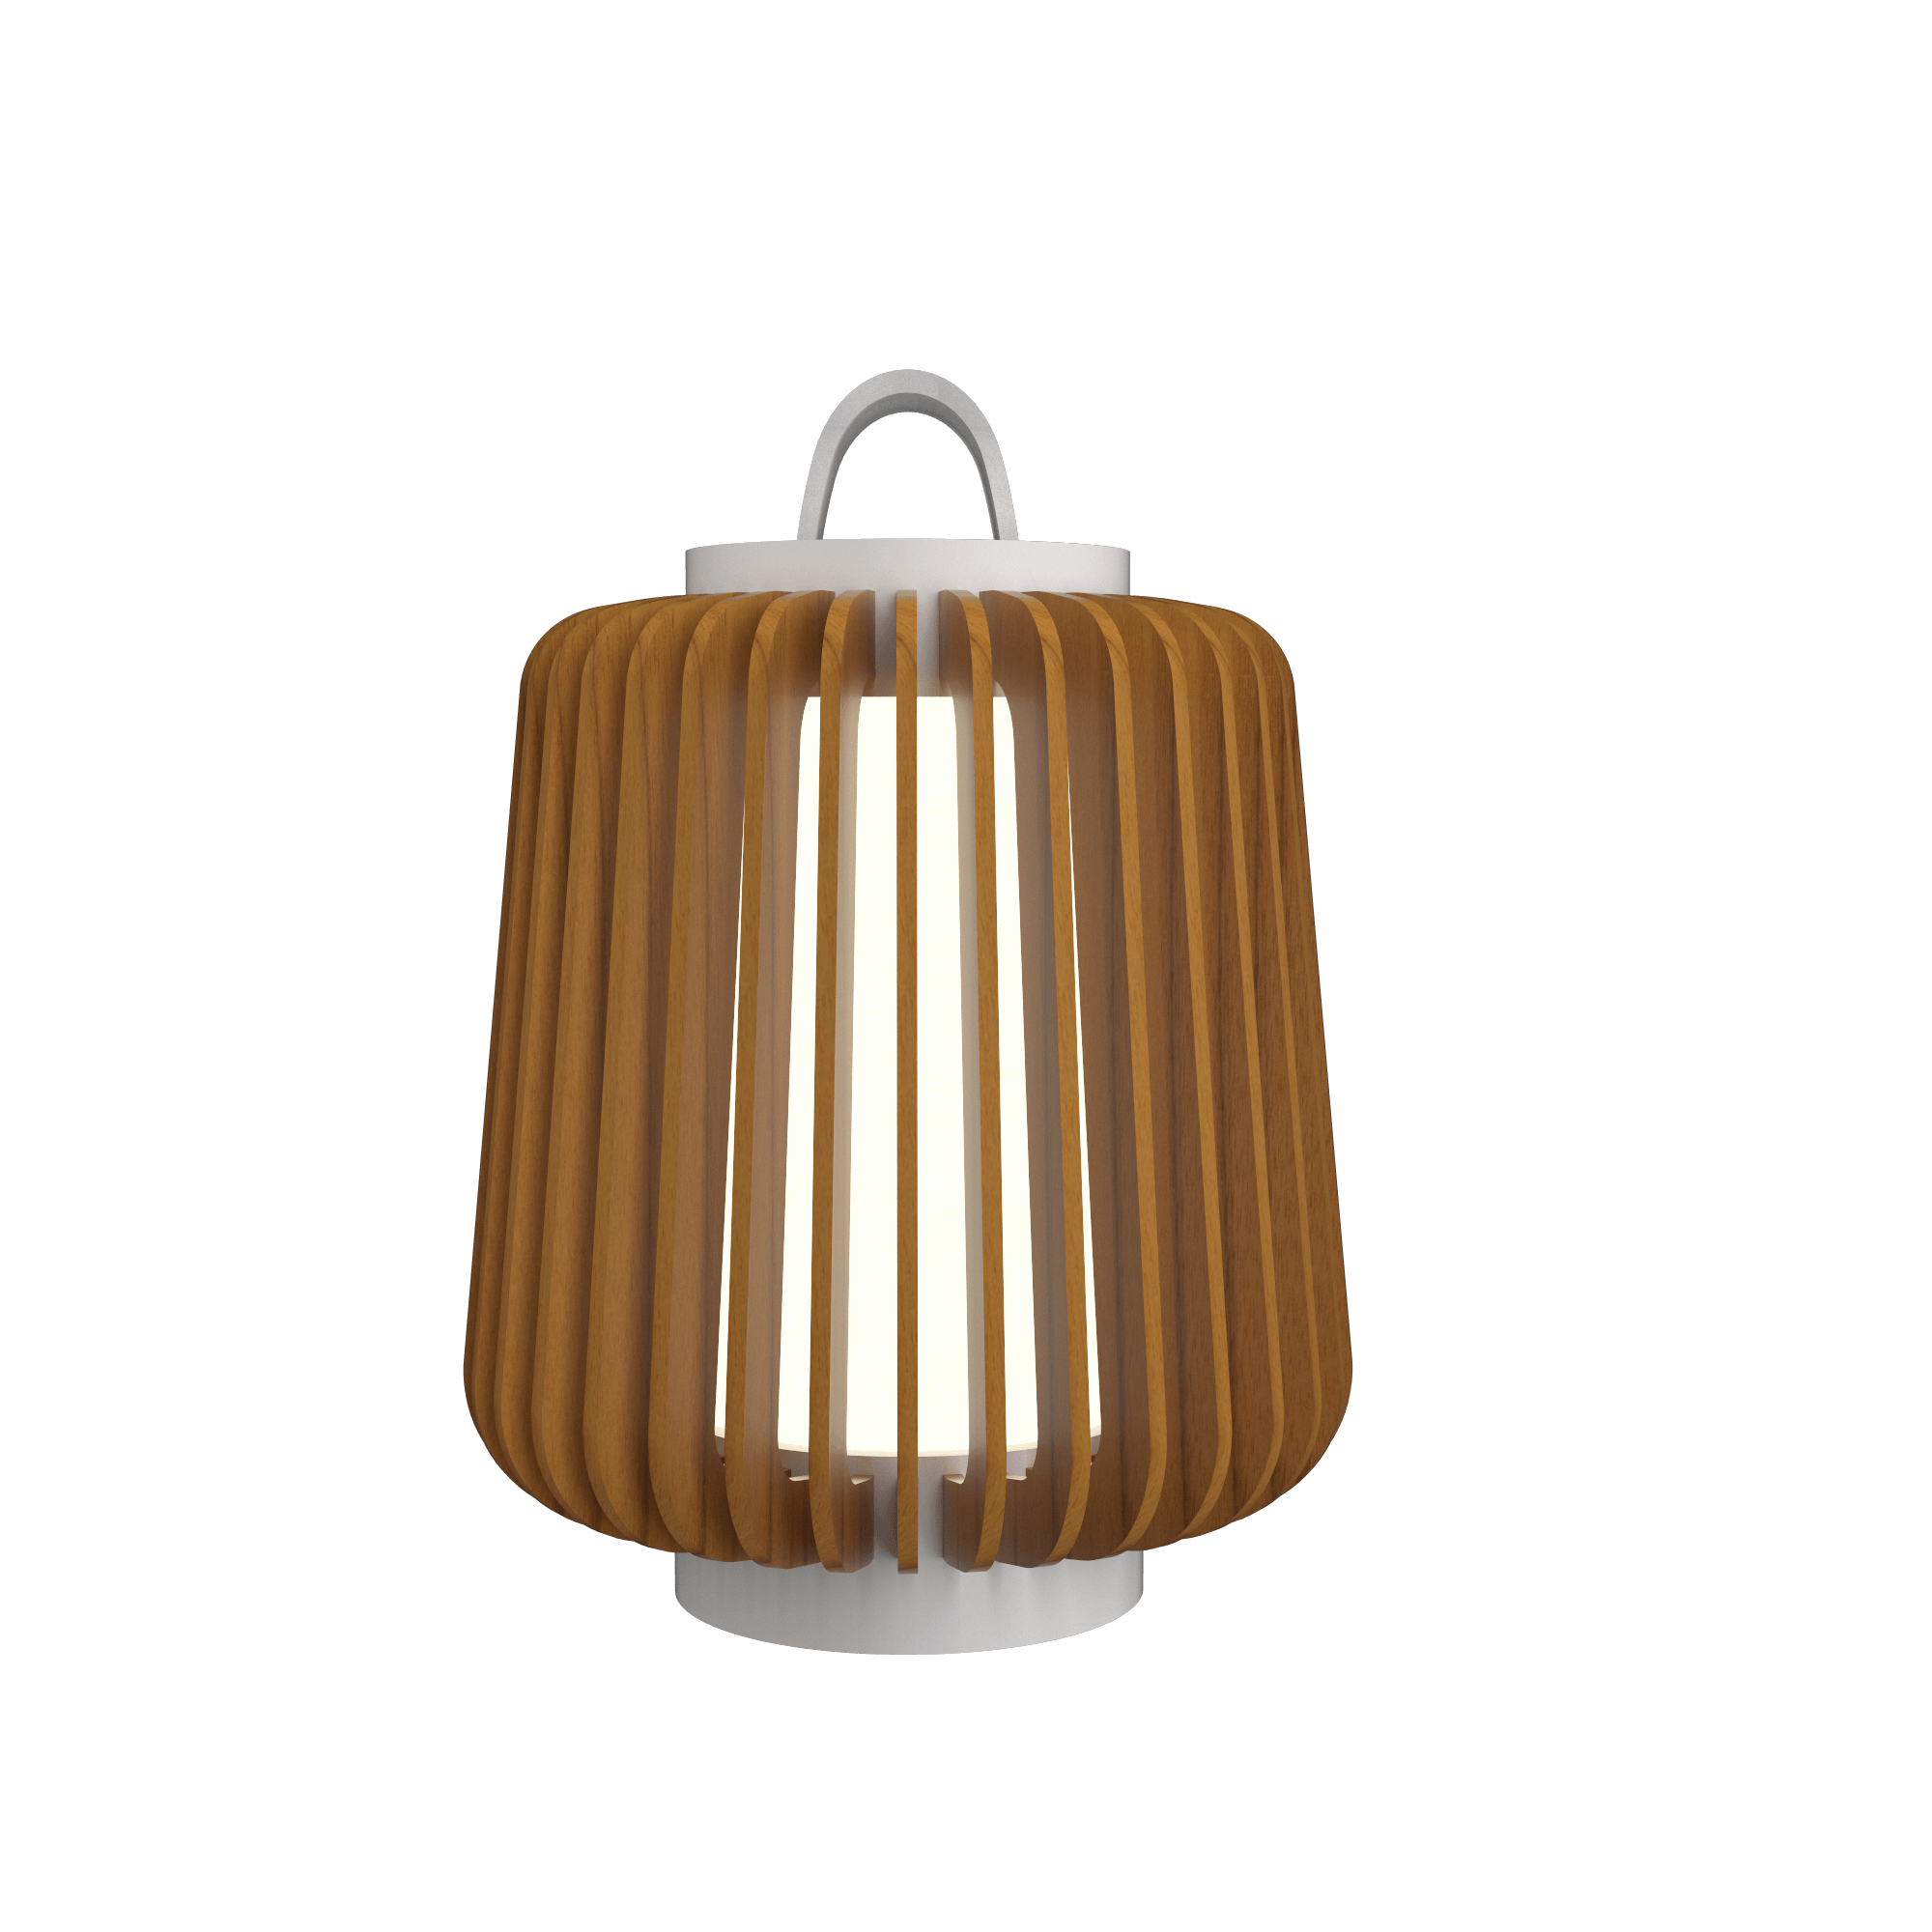 Table Lamp Accord Stecche Di Legno 7059 - Stecche Di Legno Line Accord Lighting | 12. Teak